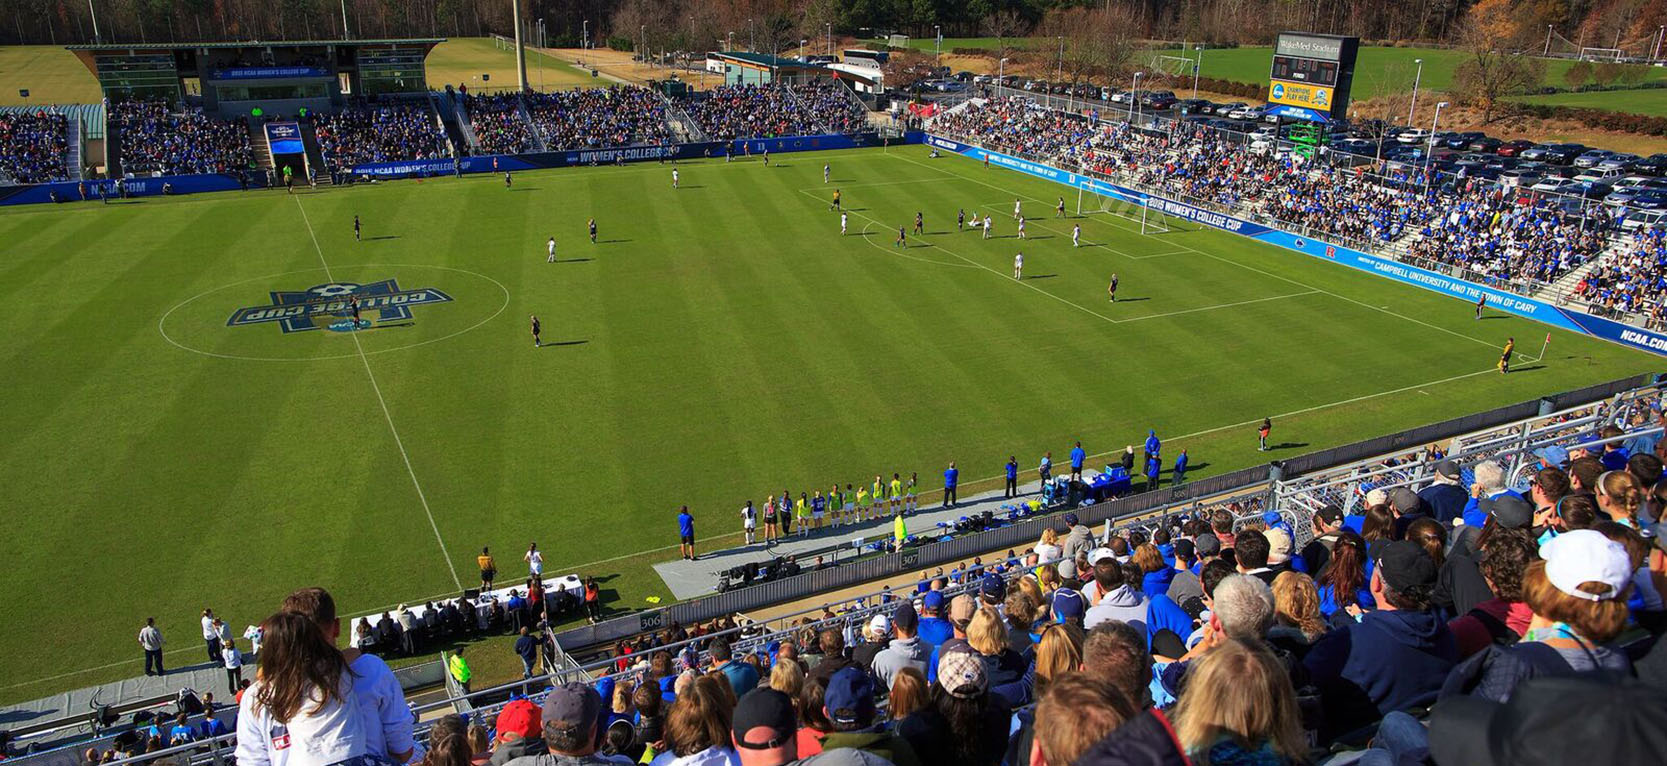 WakeMed Soccer Park | Town of Cary